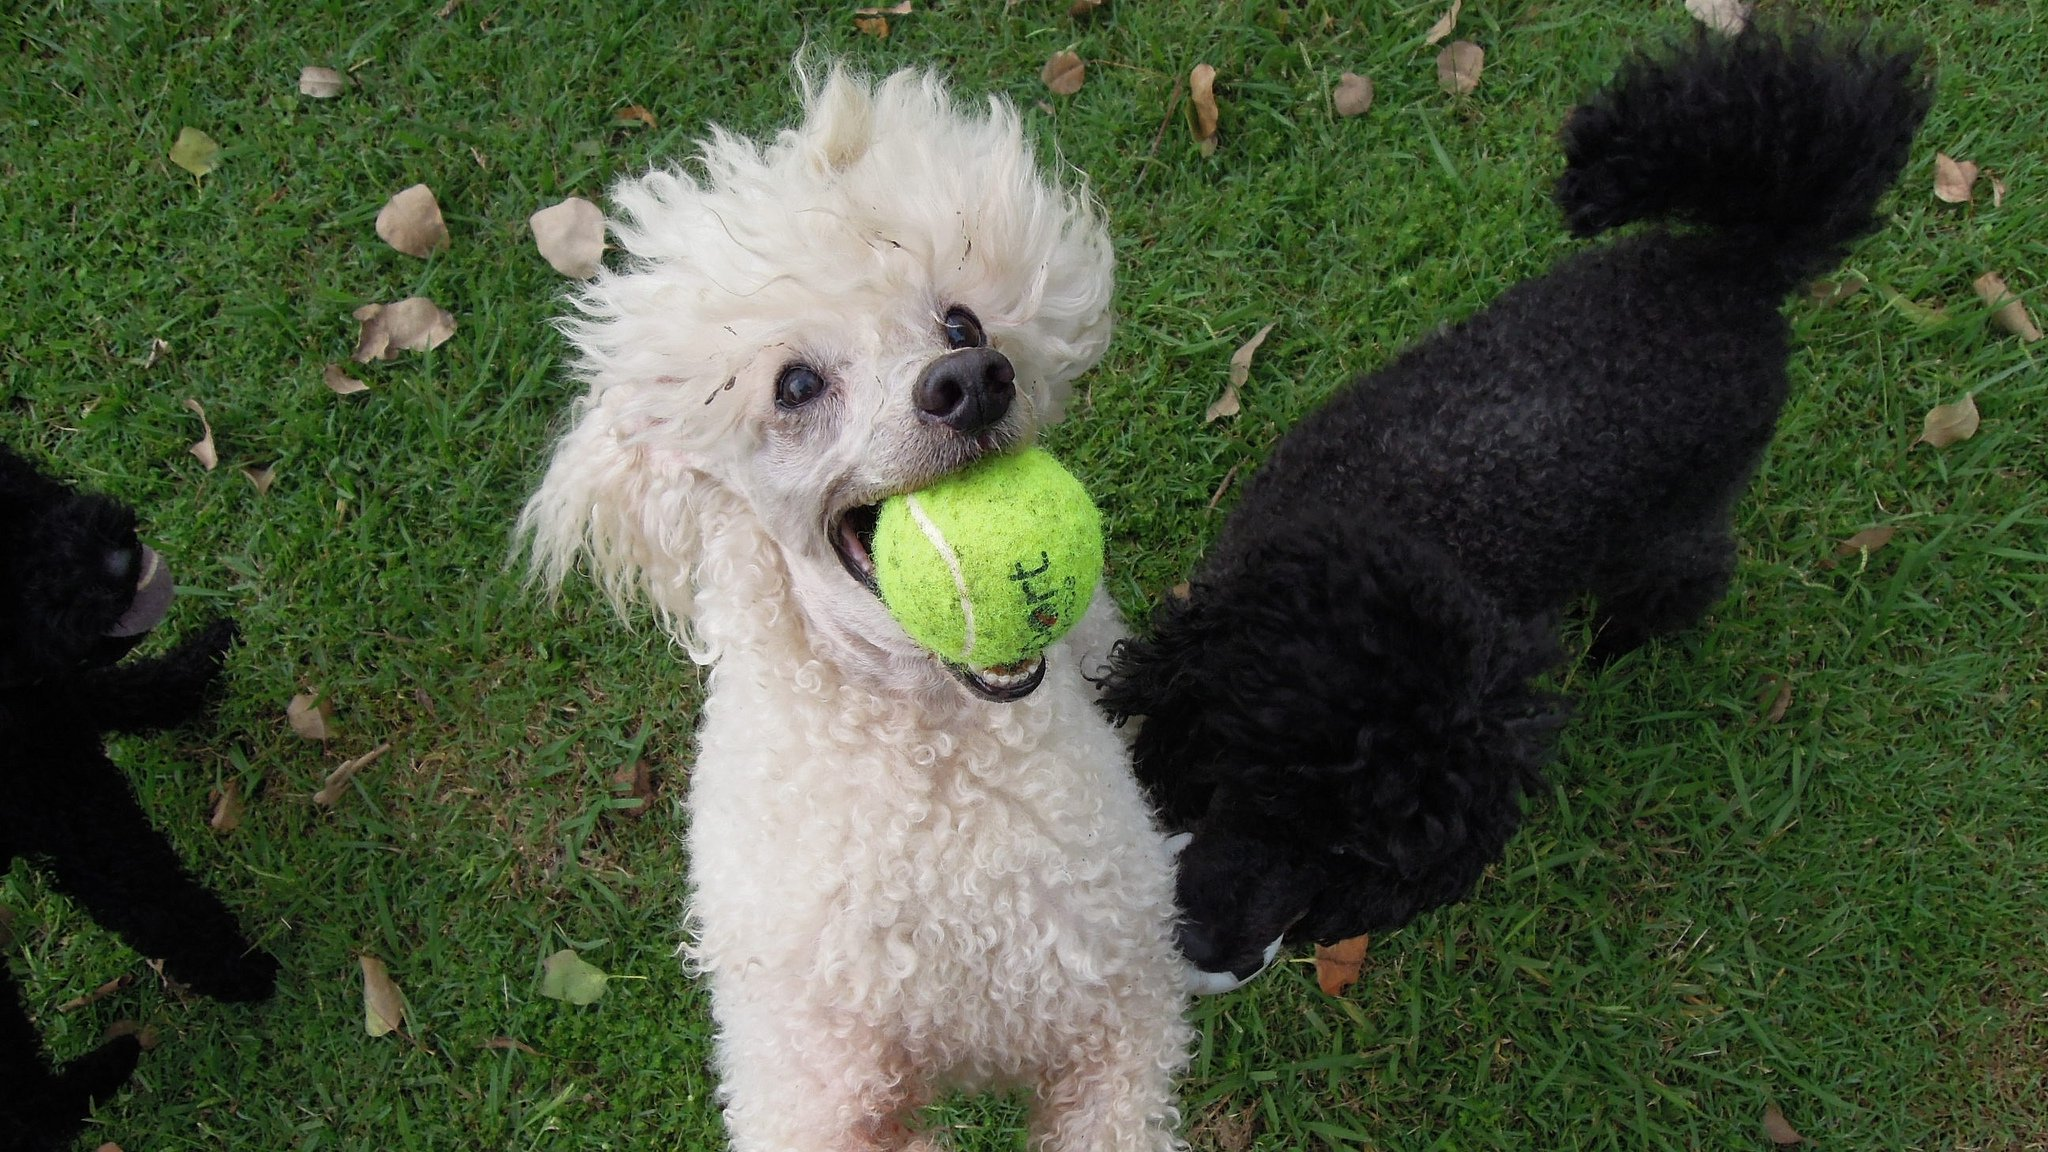 5 Things to Know About Poodles - Petful